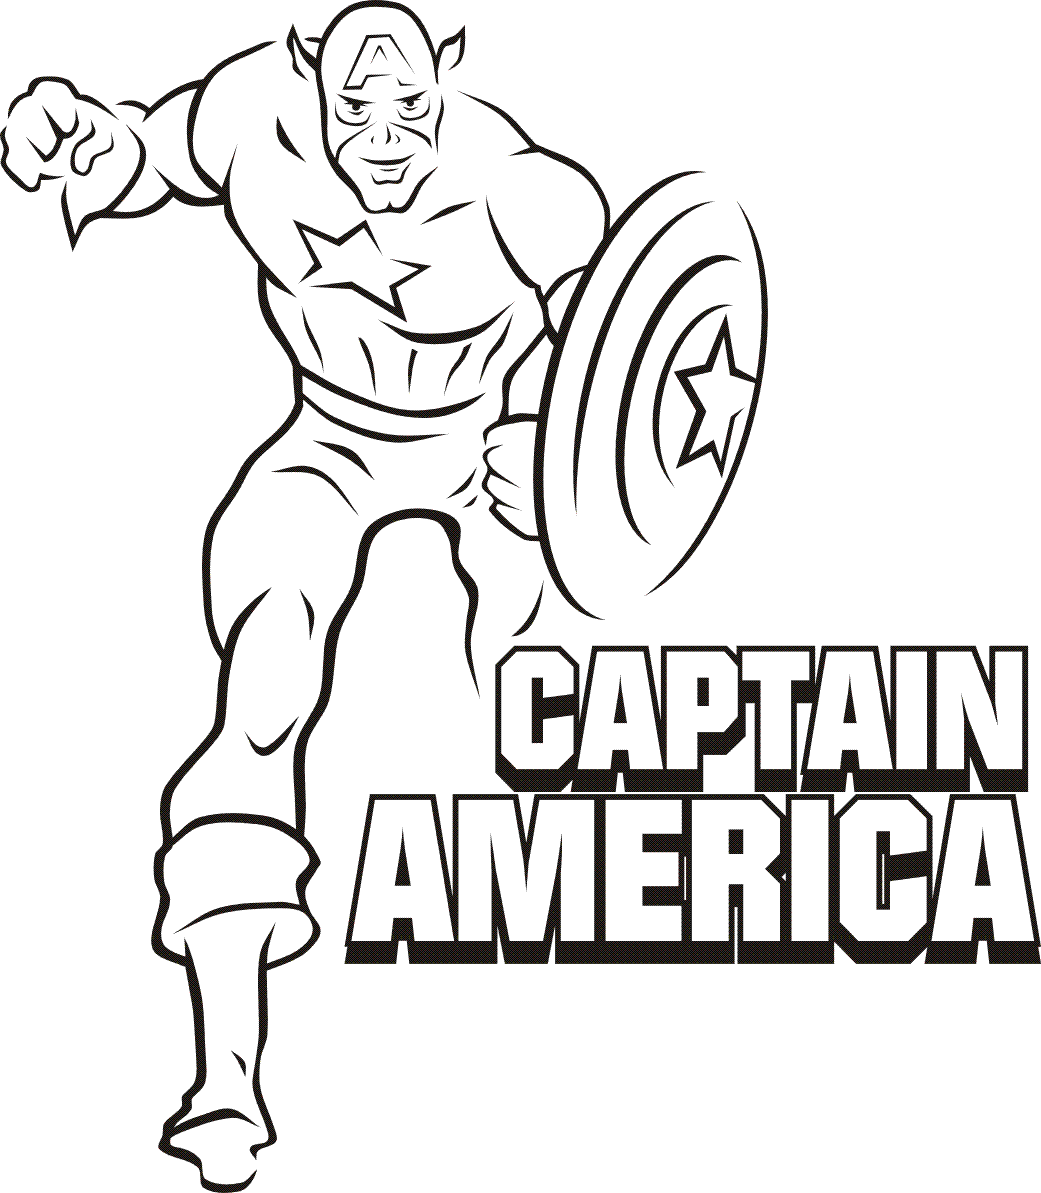 Captain America Coloring Pages Free Printable Coloring Pages Superhero Coloring Superhero Coloring Pages Captain America Coloring Pages